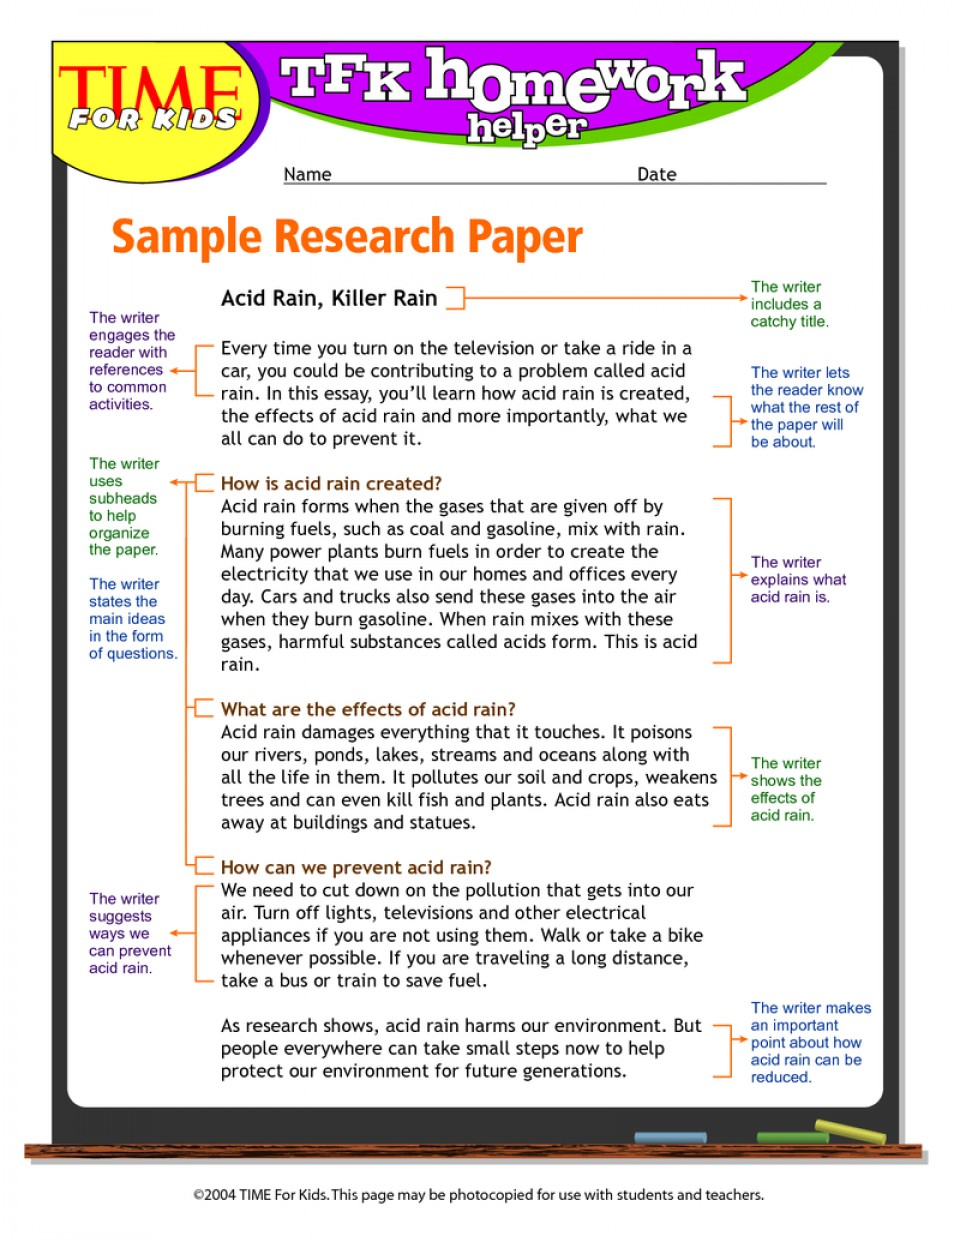 009 How To Do Research Top A Paper Write Title Page Reference Cover For In Apa Format 960